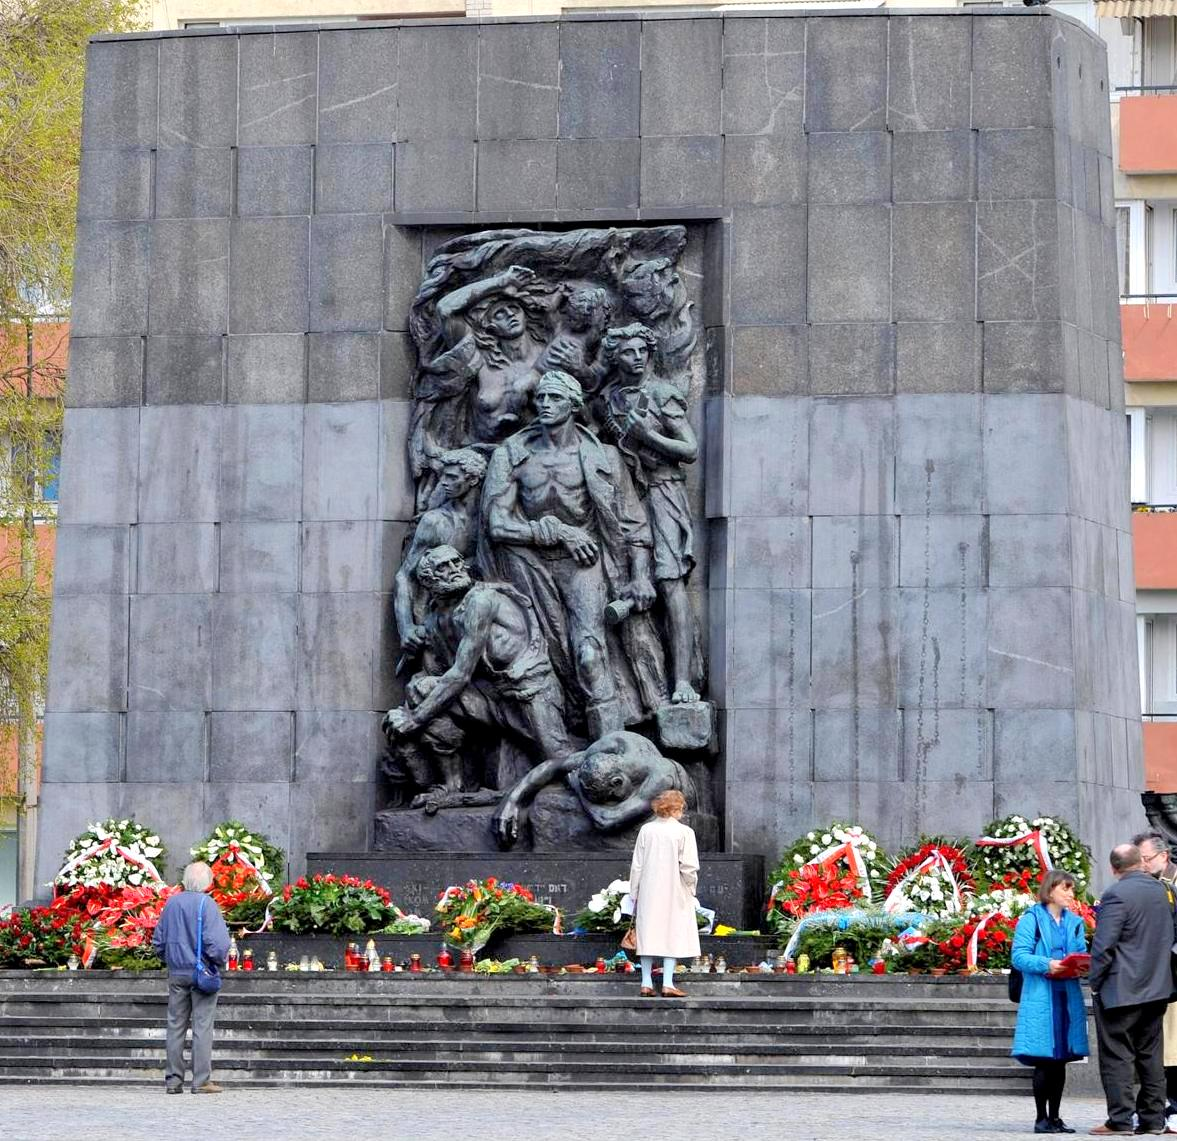 """Click photo to download. Caption: The Nathan Rapoport monument to the Warsaw Ghetto Uprising heroes. The monument is adjacent to the newly openedMuseum of the History of Polish Jews. Credit:Cezary Piwowarski.                 0     0     1     6     32     JNS     1     1     37     14.0                            Normal     0                     false     false     false         EN-US     JA     X-NONE                                                                                                                                                                                                                                                                                                                                                                                                                                                                                                                                                                                                                                                                                                                    /* Style Definitions */ table.MsoNormalTable {mso-style-name:""""Table Normal""""; mso-tstyle-rowband-size:0; mso-tstyle-colband-size:0; mso-style-noshow:yes; mso-style-priority:99; mso-style-parent:""""""""; mso-padding-alt:0in 5.4pt 0in 5.4pt; mso-para-margin:0in; mso-para-margin-bottom:.0001pt; mso-pagination:widow-orphan; font-size:12.0pt; font-family:Cambria; mso-ascii-font-family:Cambria; mso-ascii-theme-font:minor-latin; mso-hansi-font-family:Cambria; mso-hansi-theme-font:minor-latin;}"""